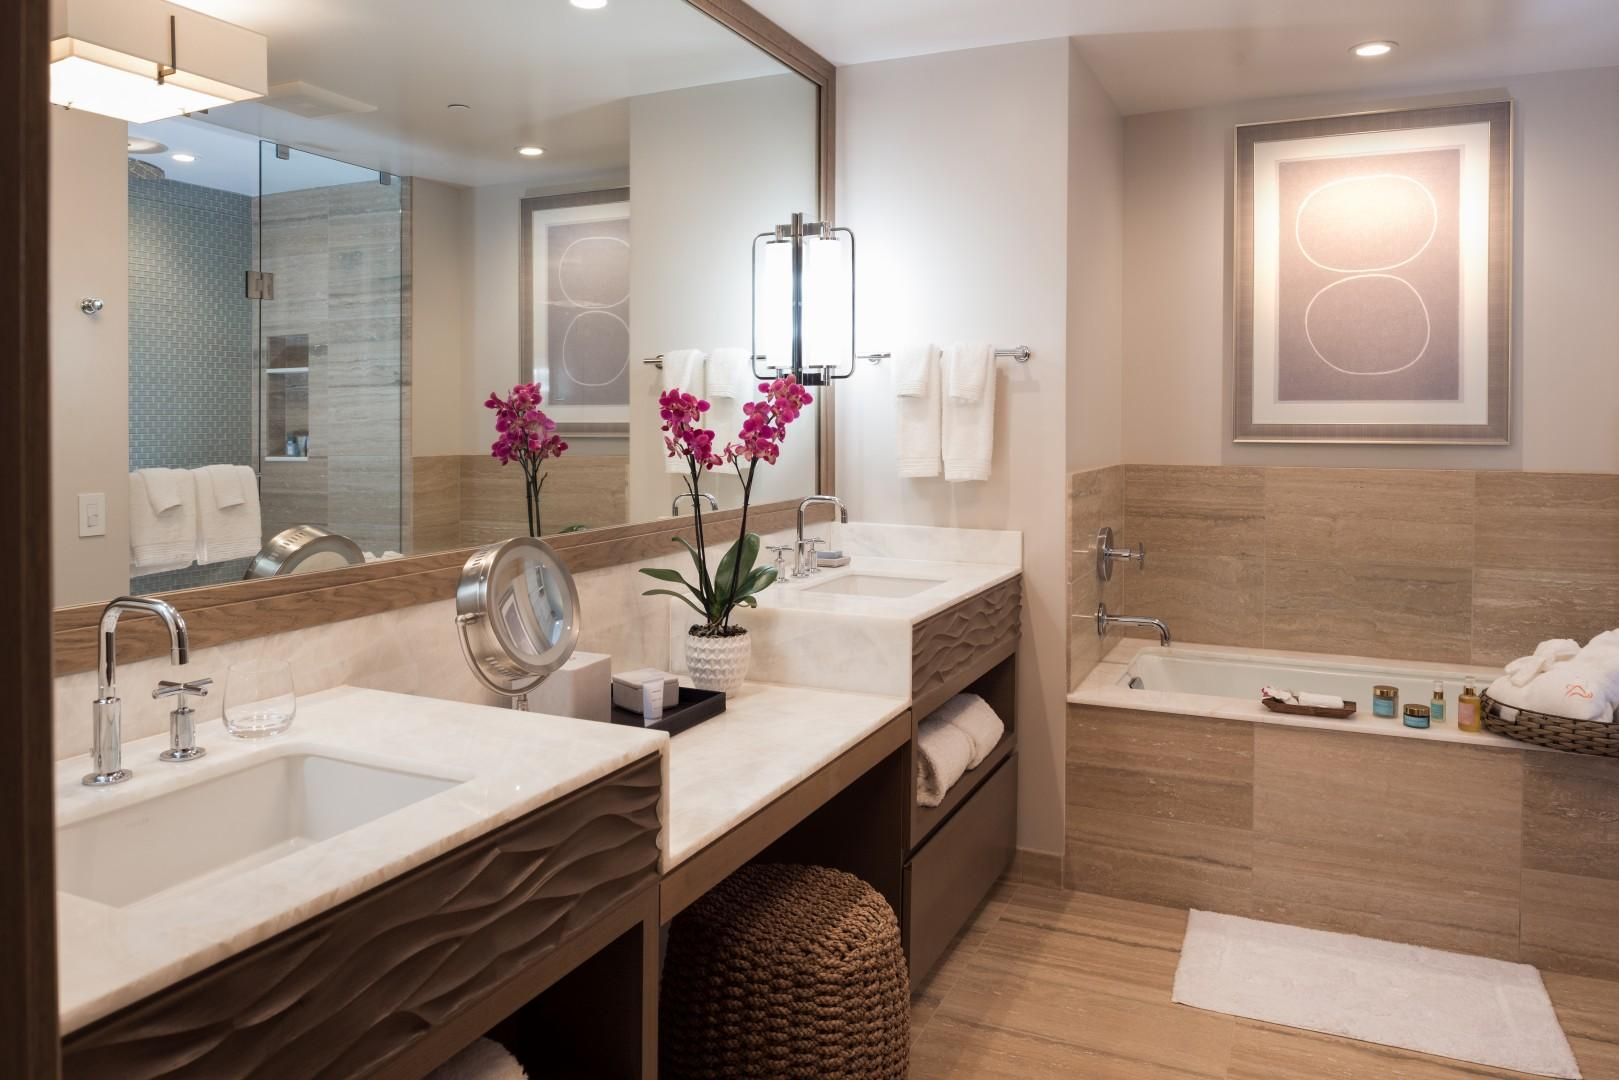 A second bathroom also offers a tub, a walk-in shower, and dual sinks.